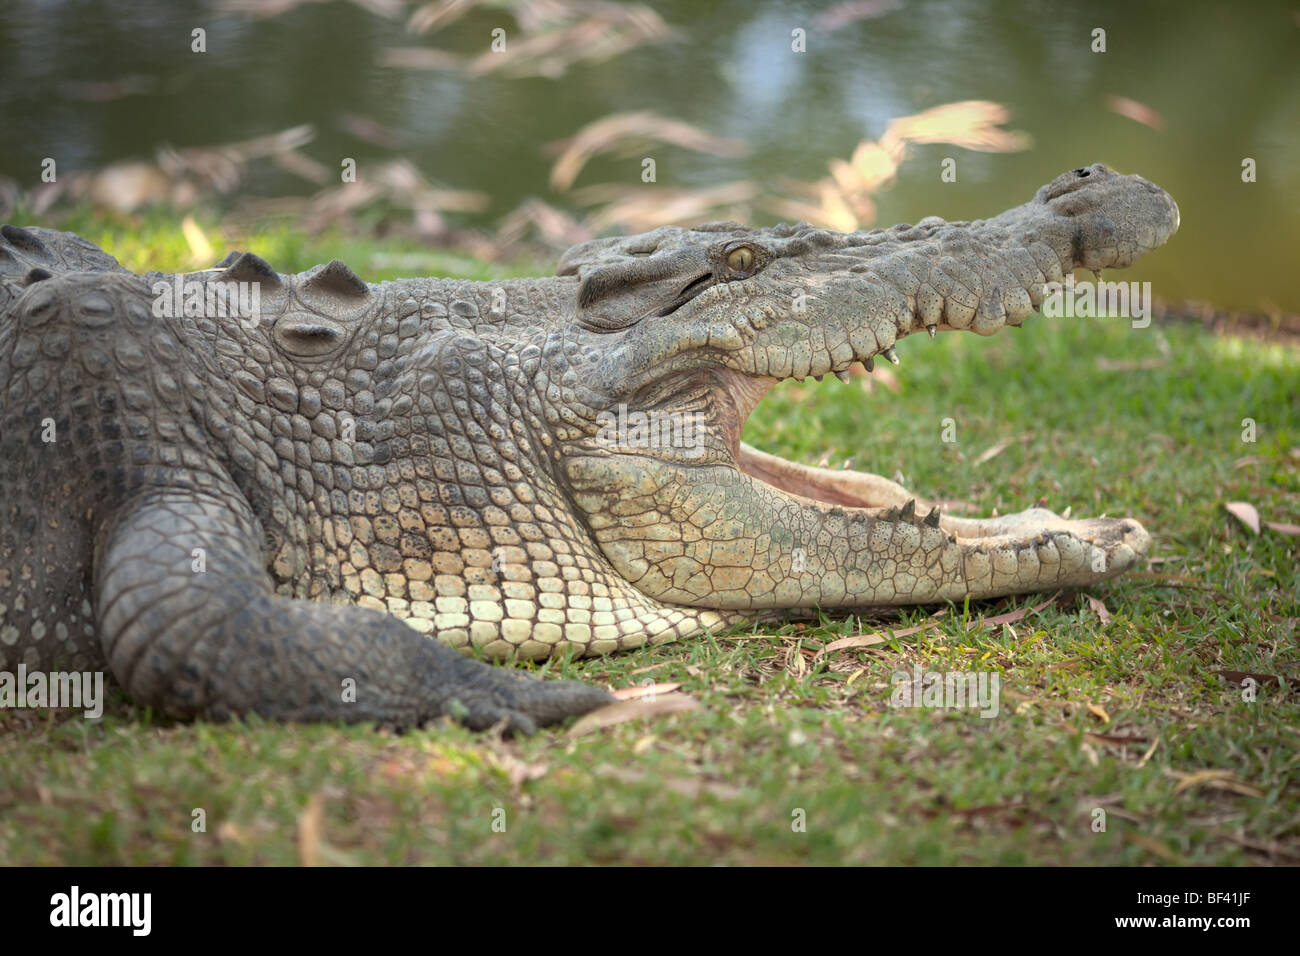 A salt water crocodile resting on a large embankment. - Stock Image